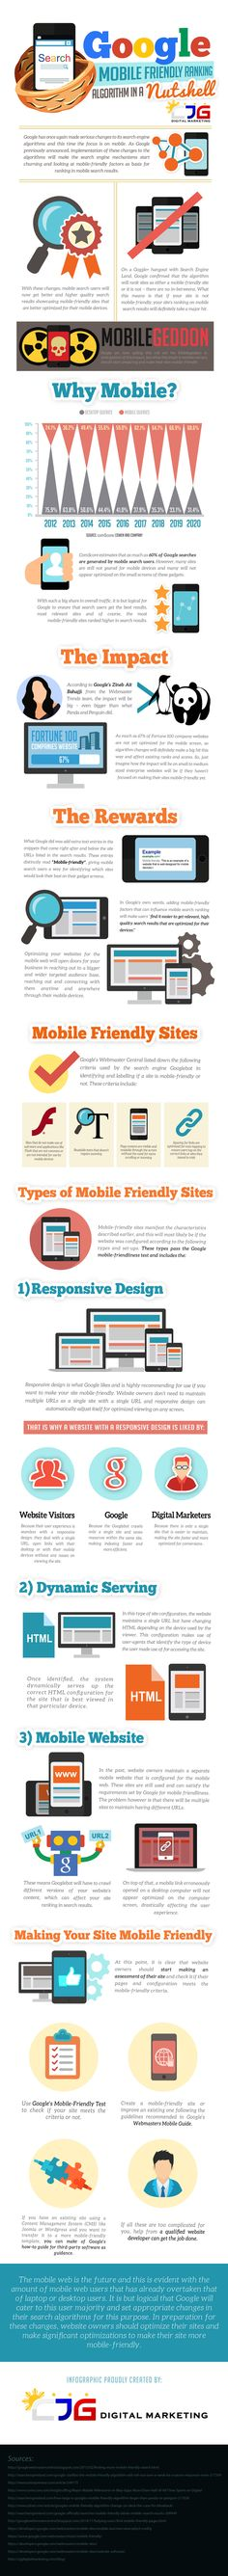 Google Mobile Friendly Ranking Algorithm In A Nutshell (Infographic)